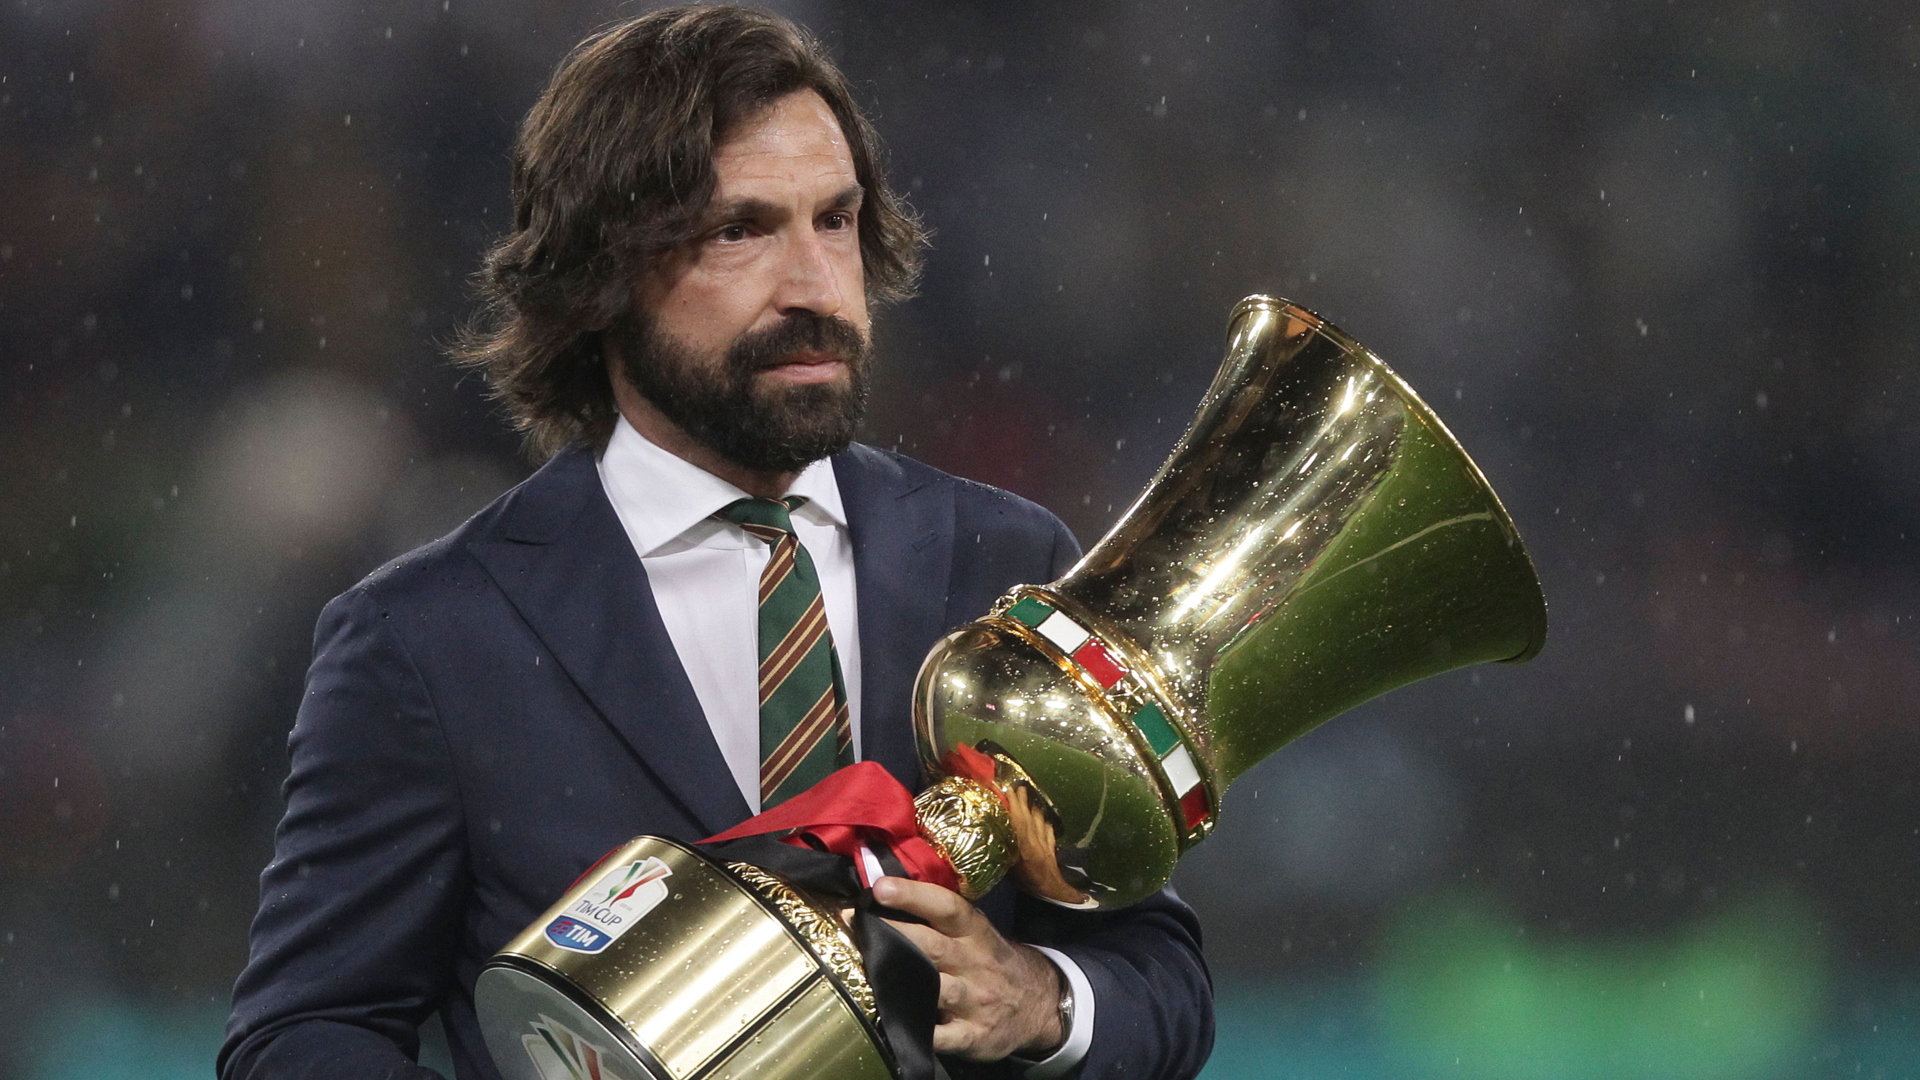 'He starts at the top with the best team' - Mancini sees Pirlo as 'lucky' but a good fit for Juventus